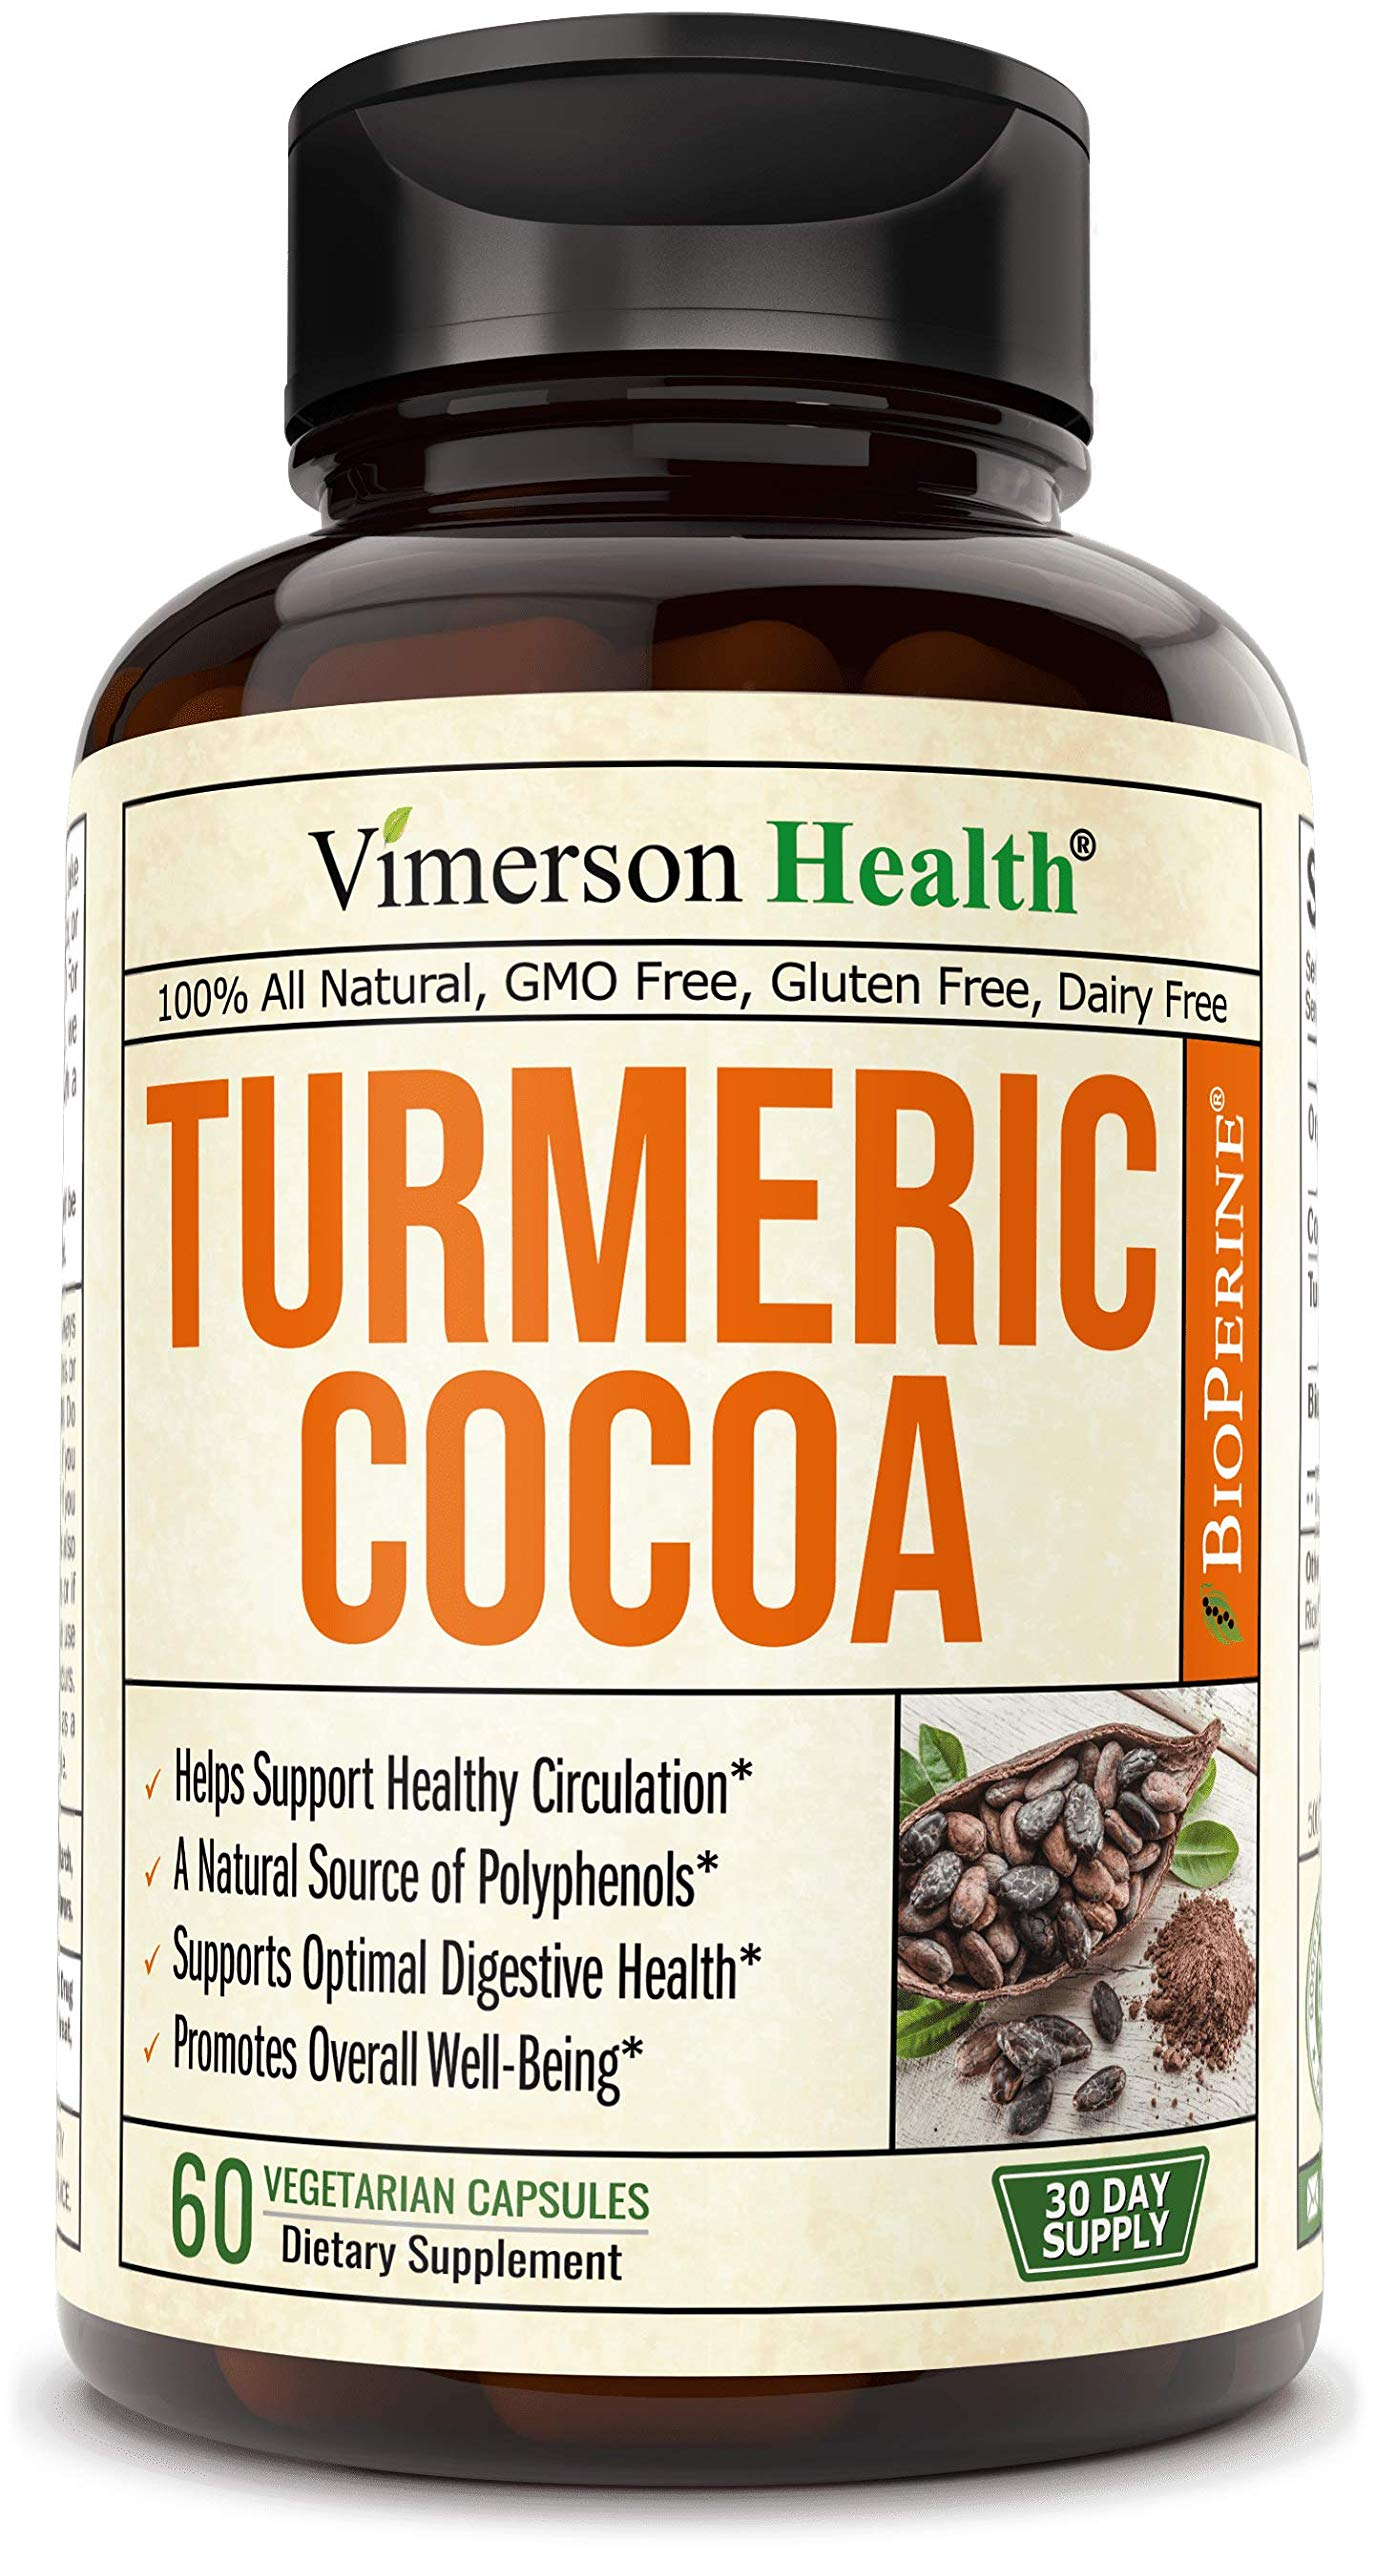 Turmeric Curcumin with Raw Cocoa Powder. Full Spectrum (Cacao) 600 milligrams Supplement. Inflammatory Response Support with Natural Polyphenols for Optimal Digestive Health and Overall Wellbeing